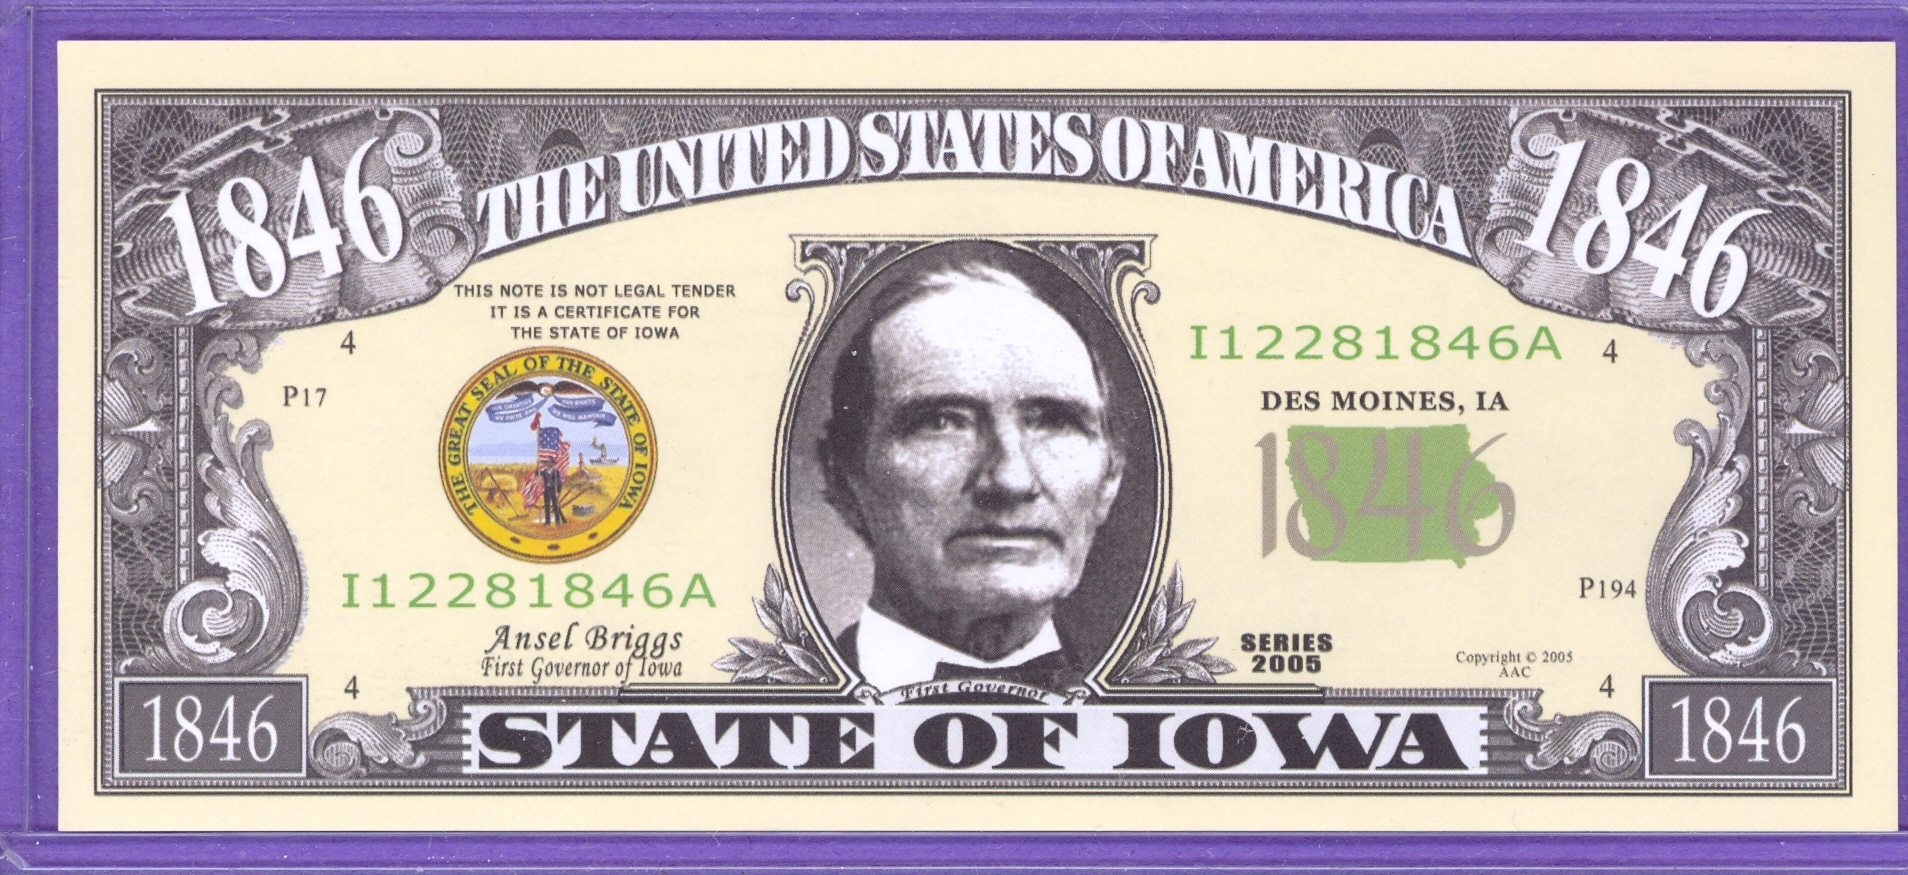 State of Iowa Novelty or Fantasy Note